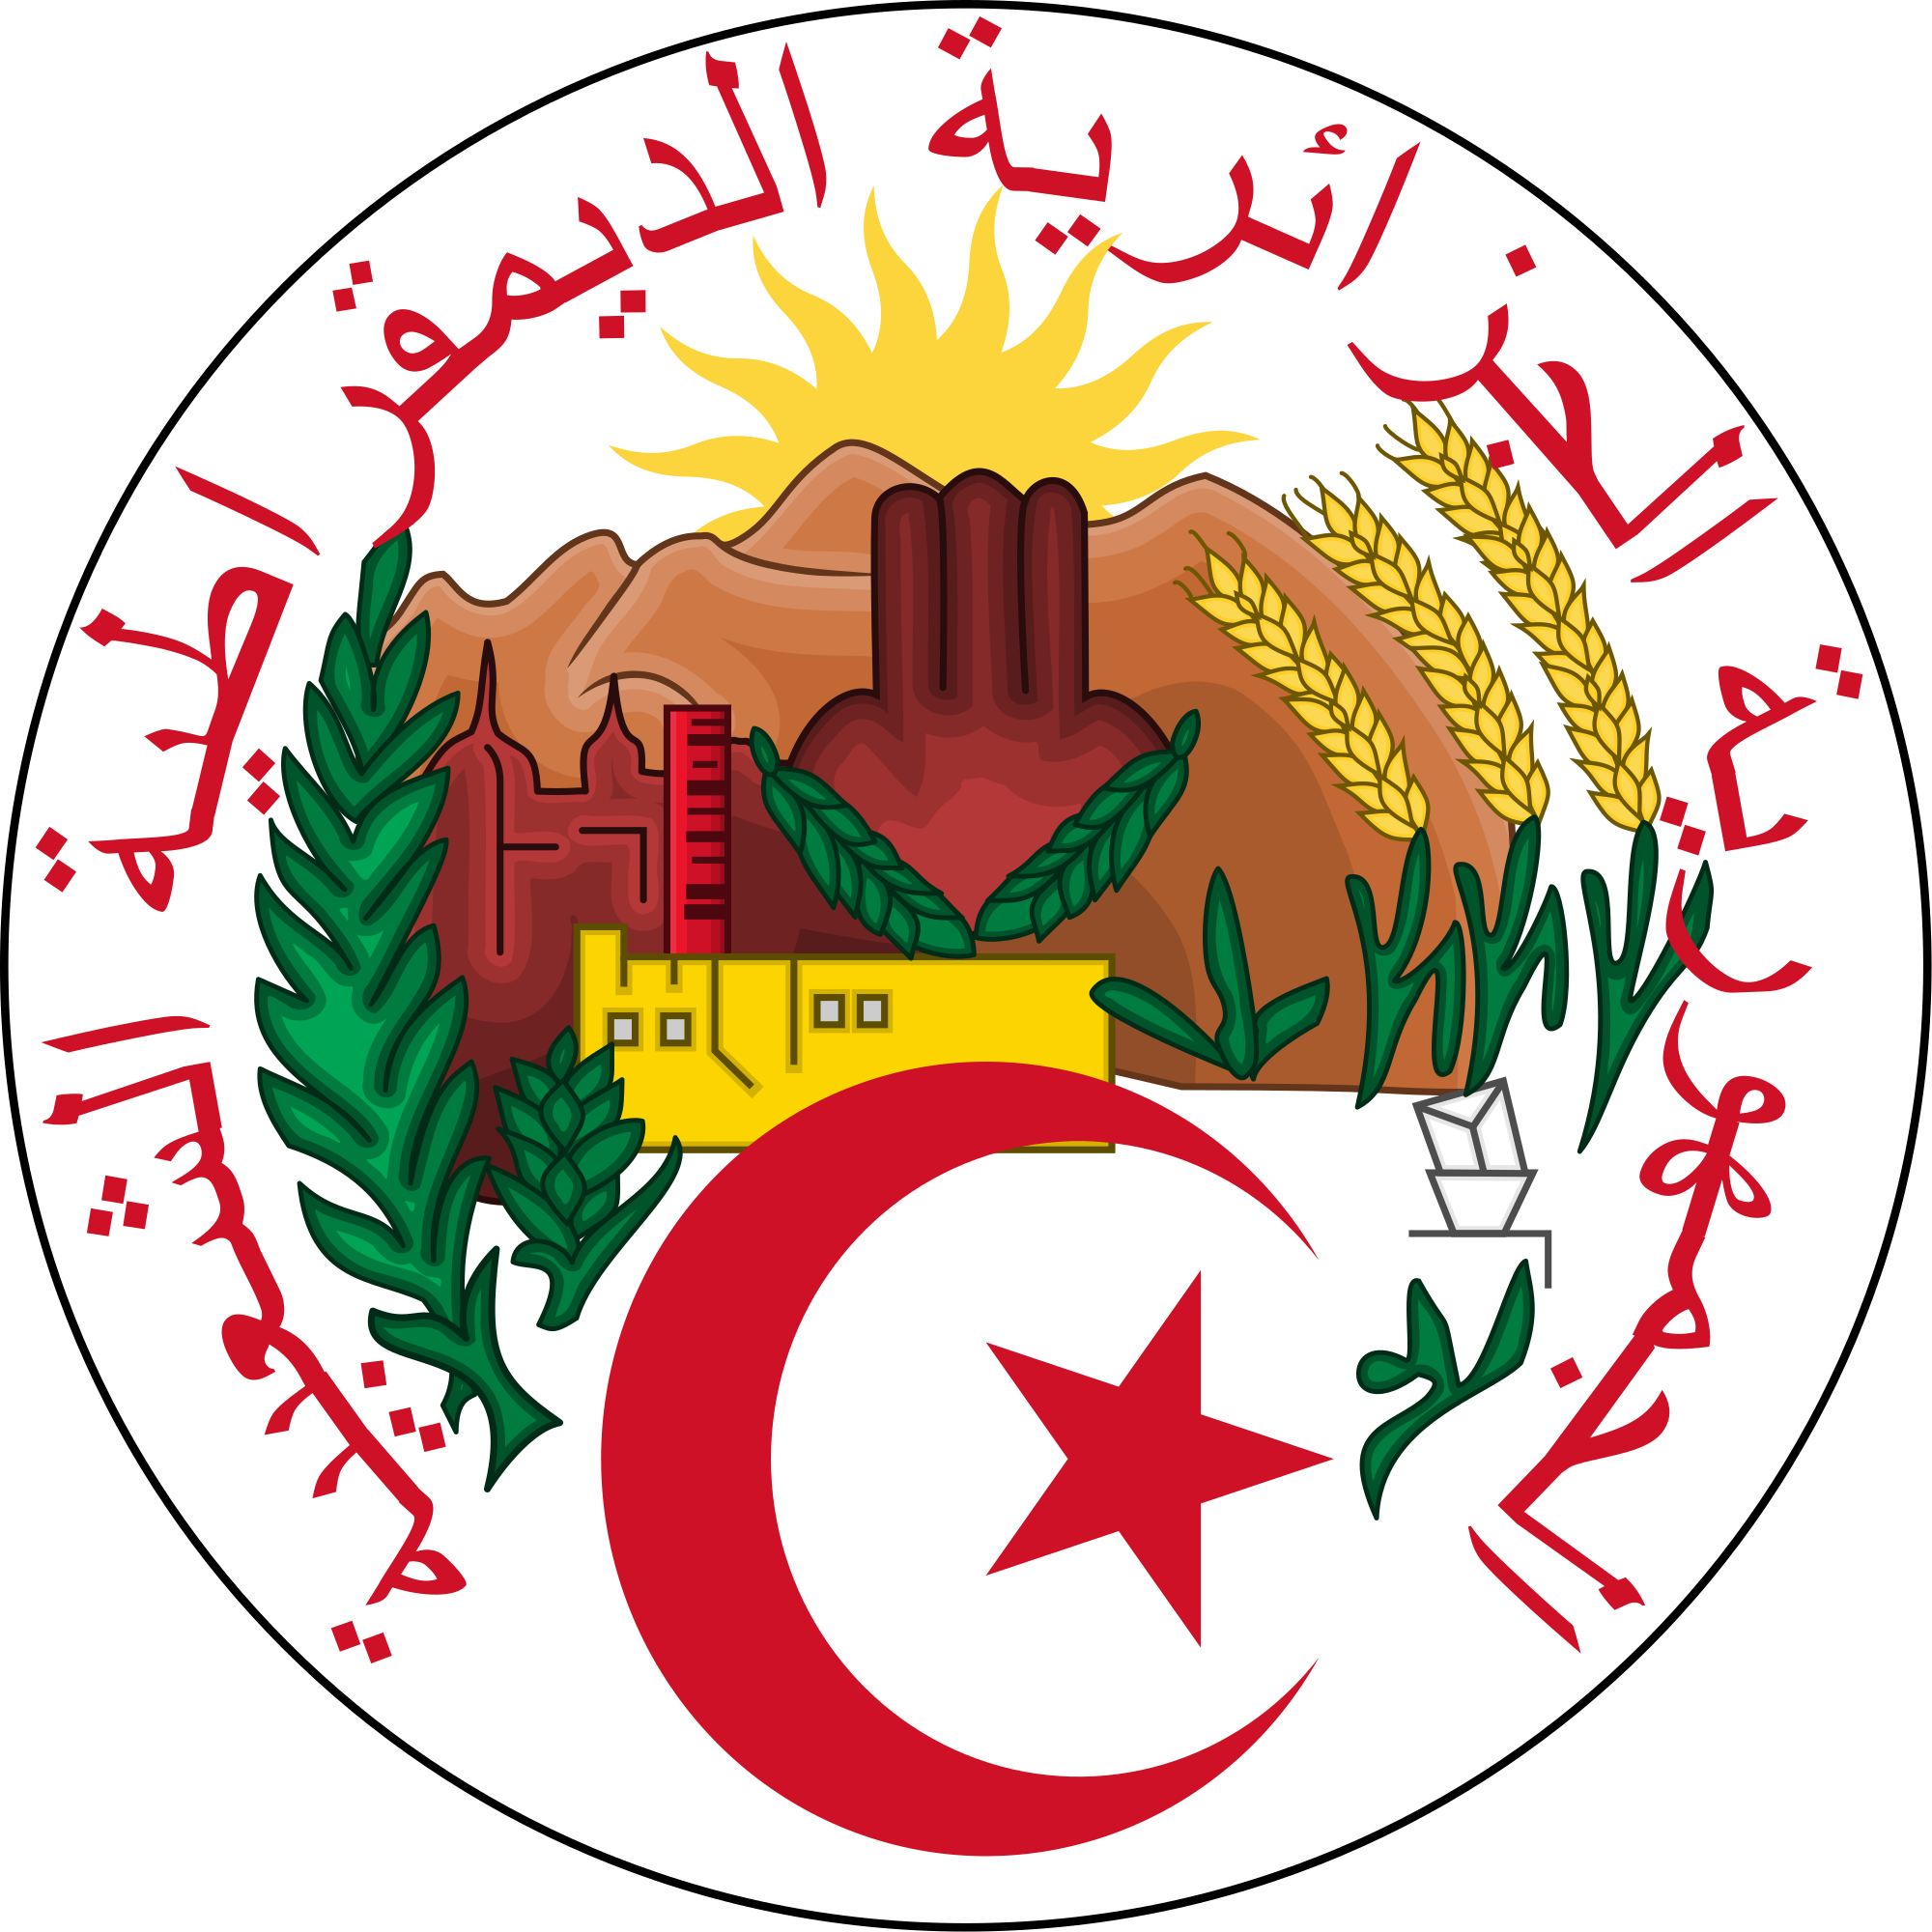 Parliament of algeria wikipedia. Democracy clipart bicameral legislature